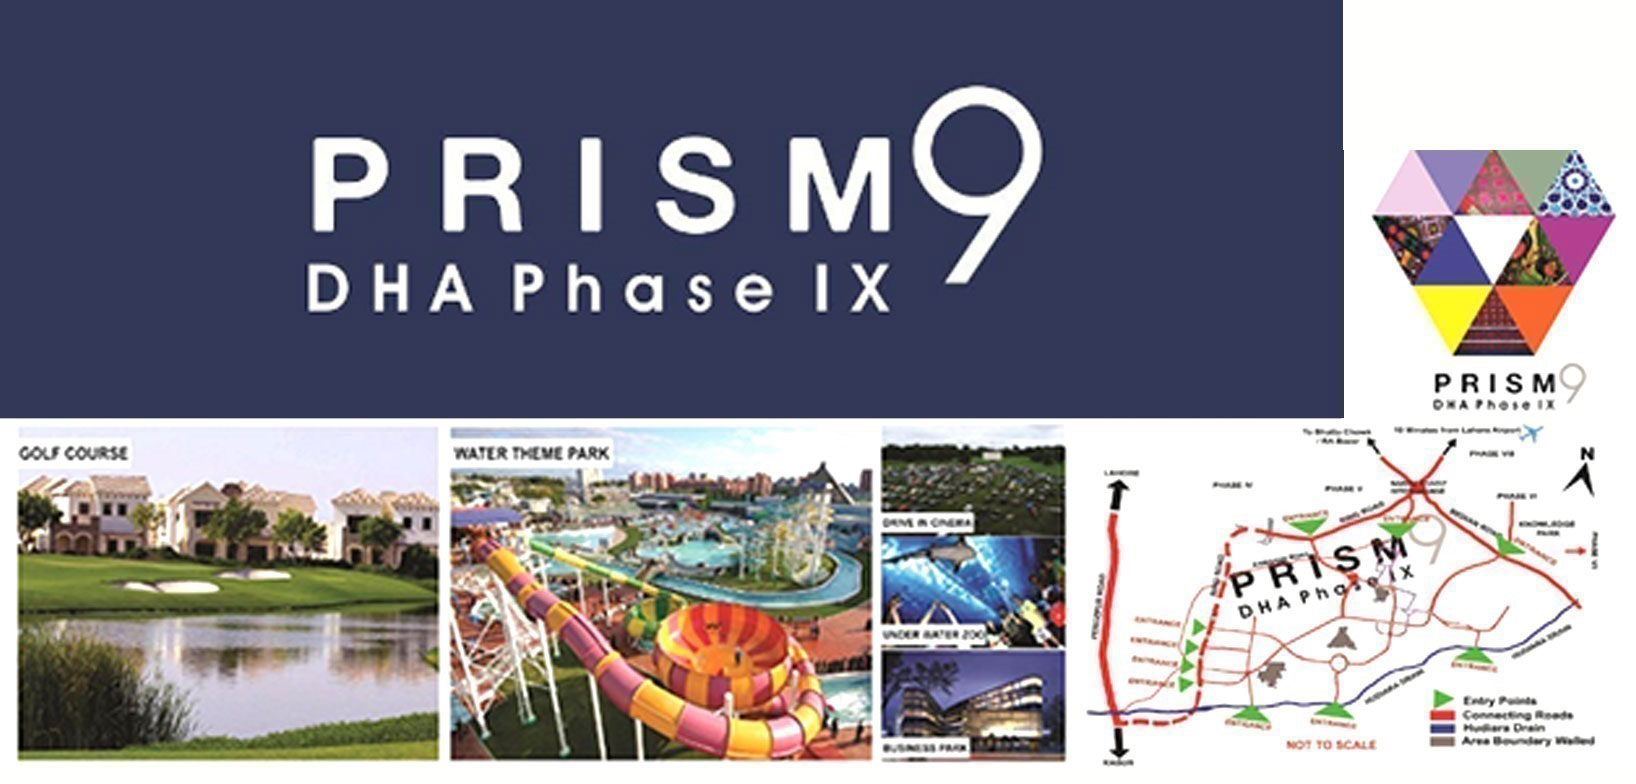 Plot No 2139 For Sale In Dha Phase 9 Prism Very Good Location And Very Low Price